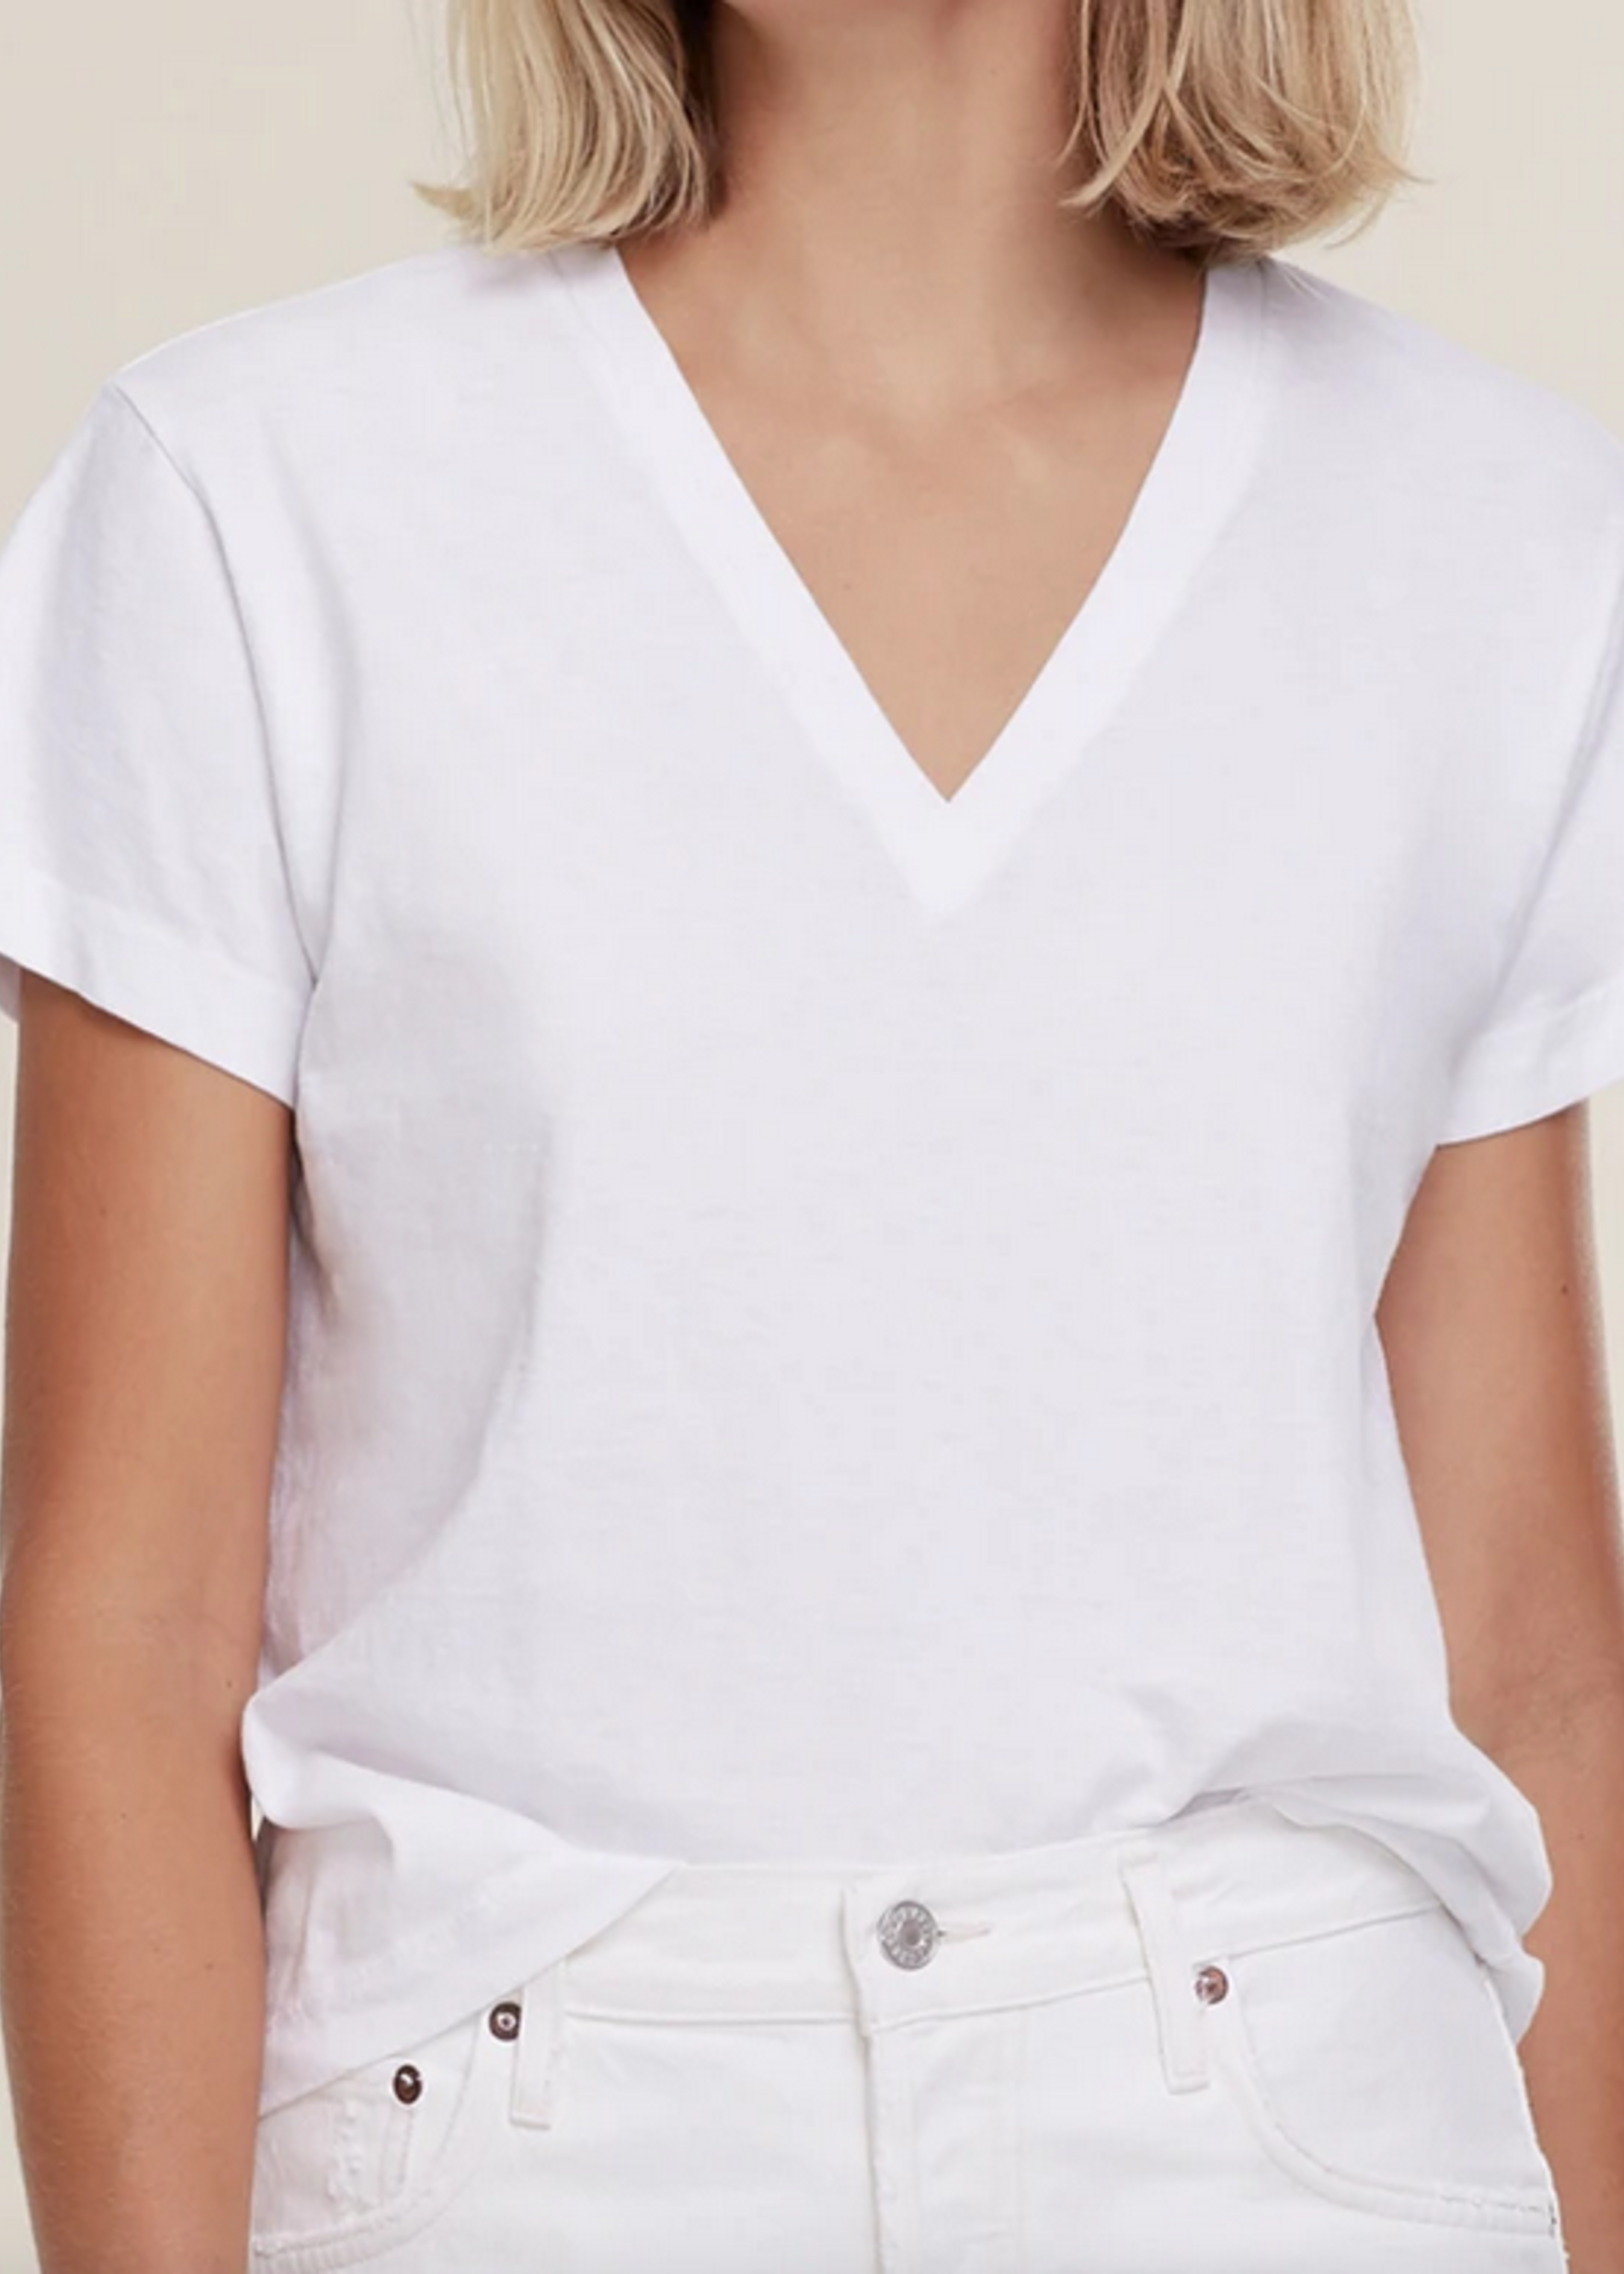 Elitaire Boutique Thea V Neck Tee in White